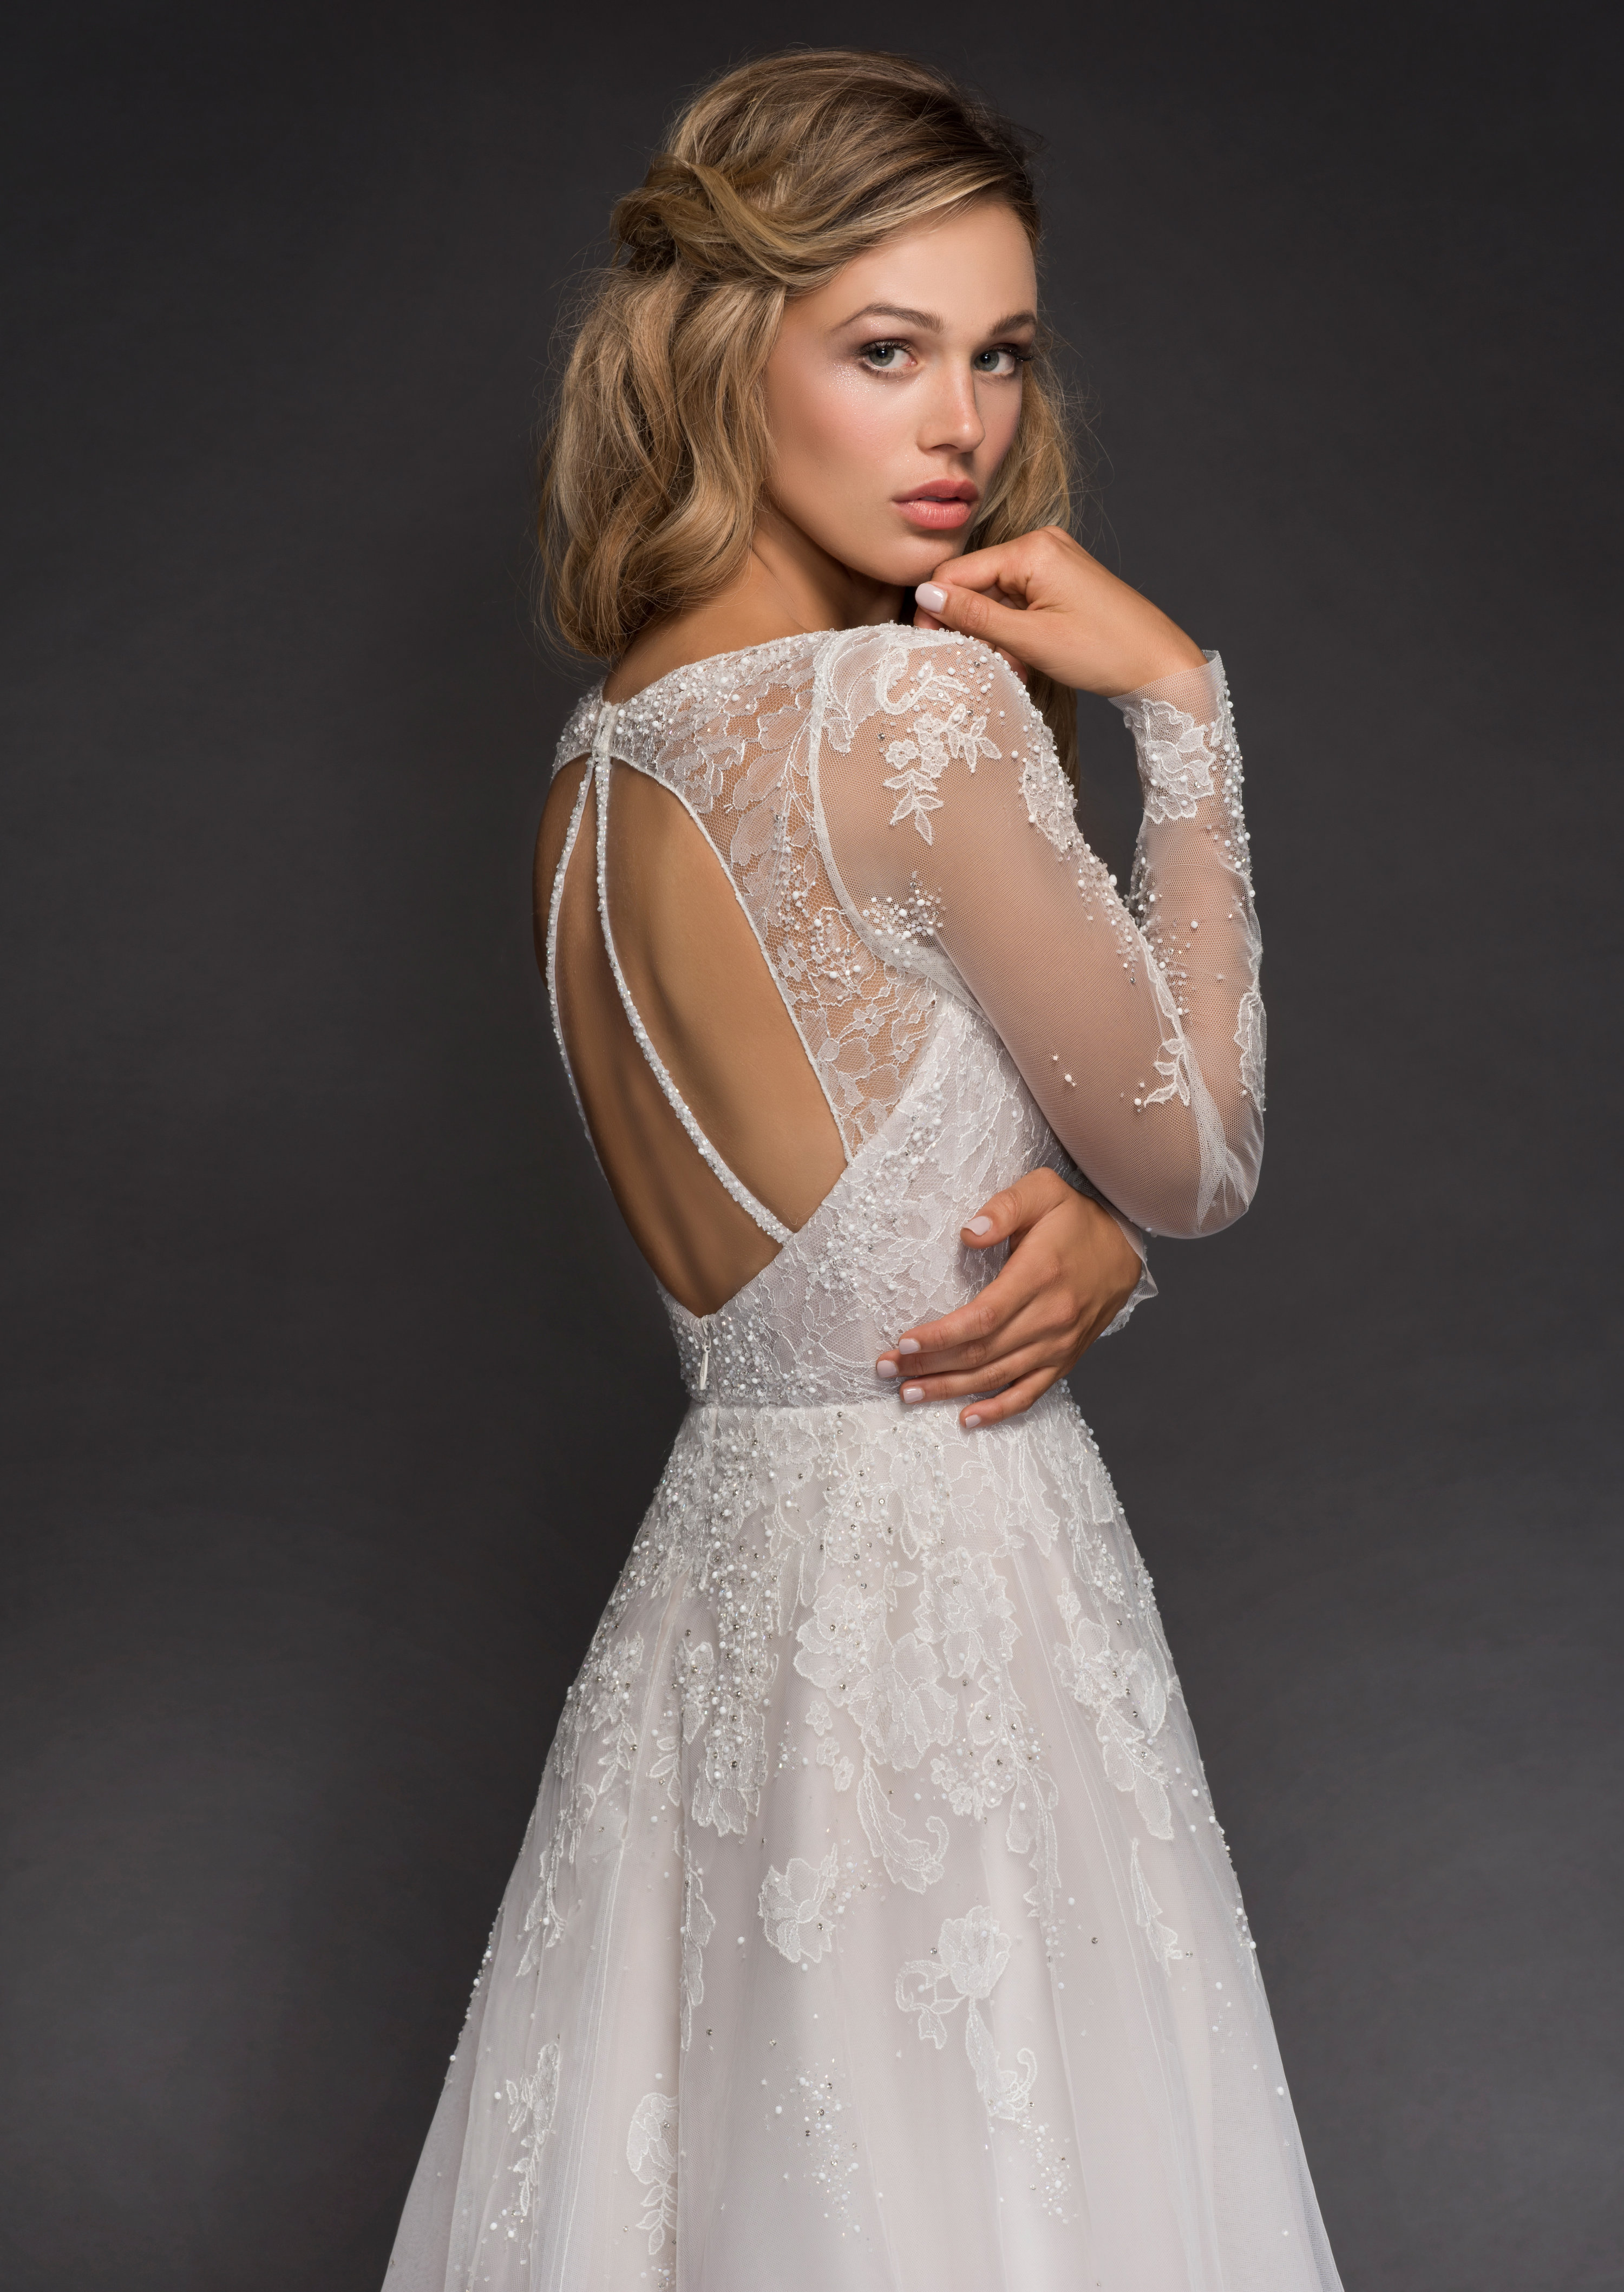 Bridal Gowns and Wedding Dresses by JLM Couture - Style 6808 Mara